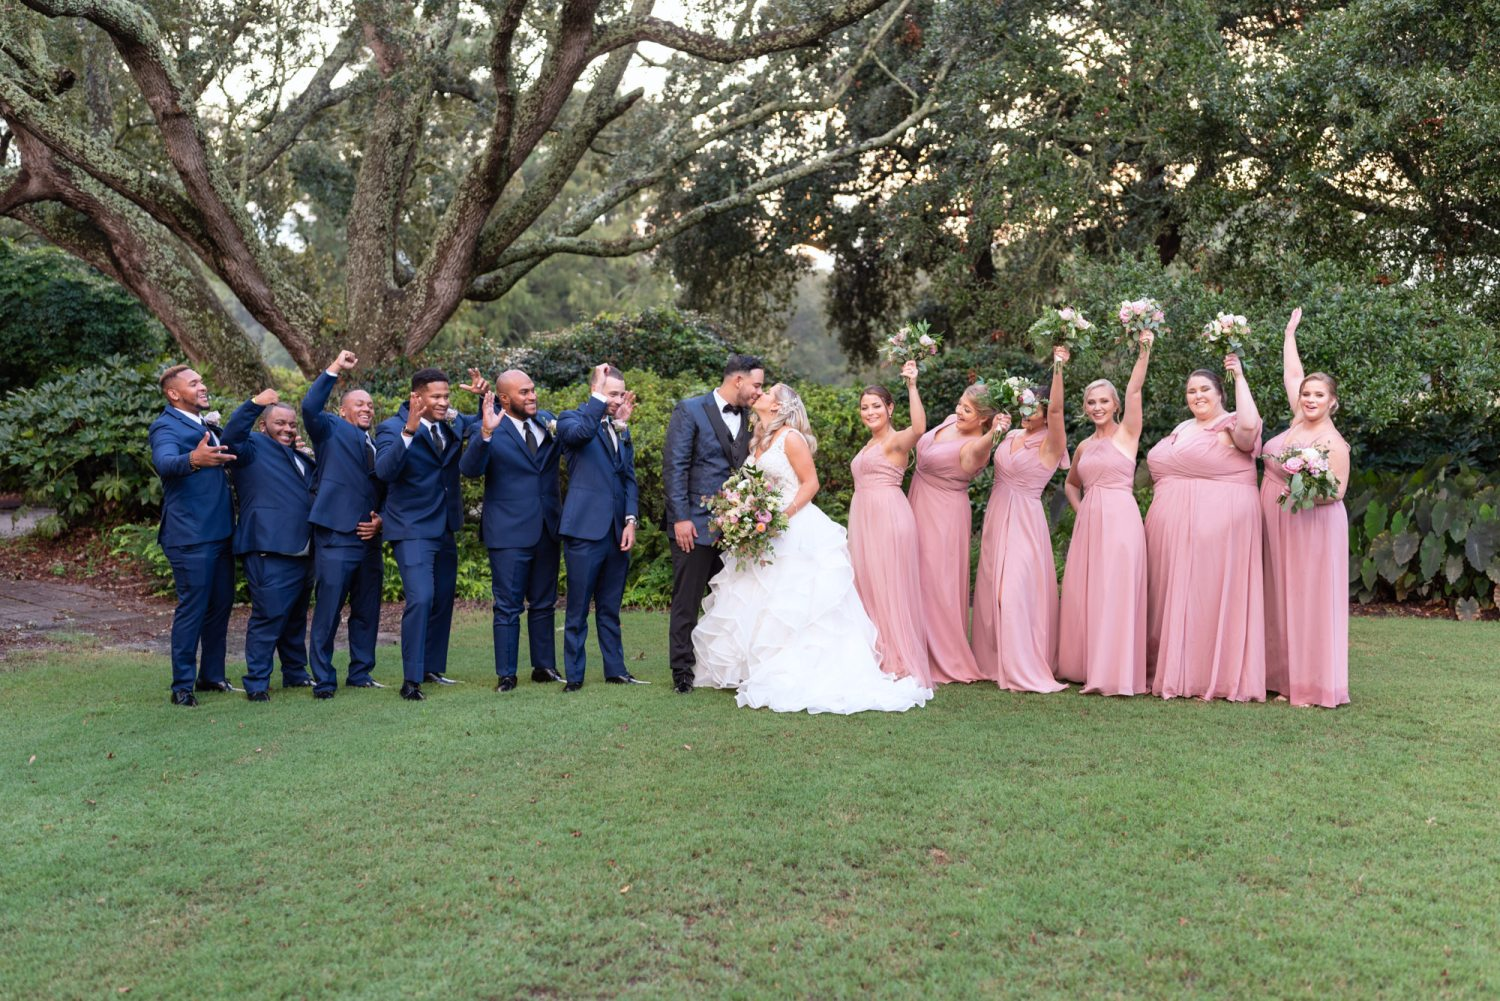 Bridal party portraits on the lawn - Litchfield Country Club